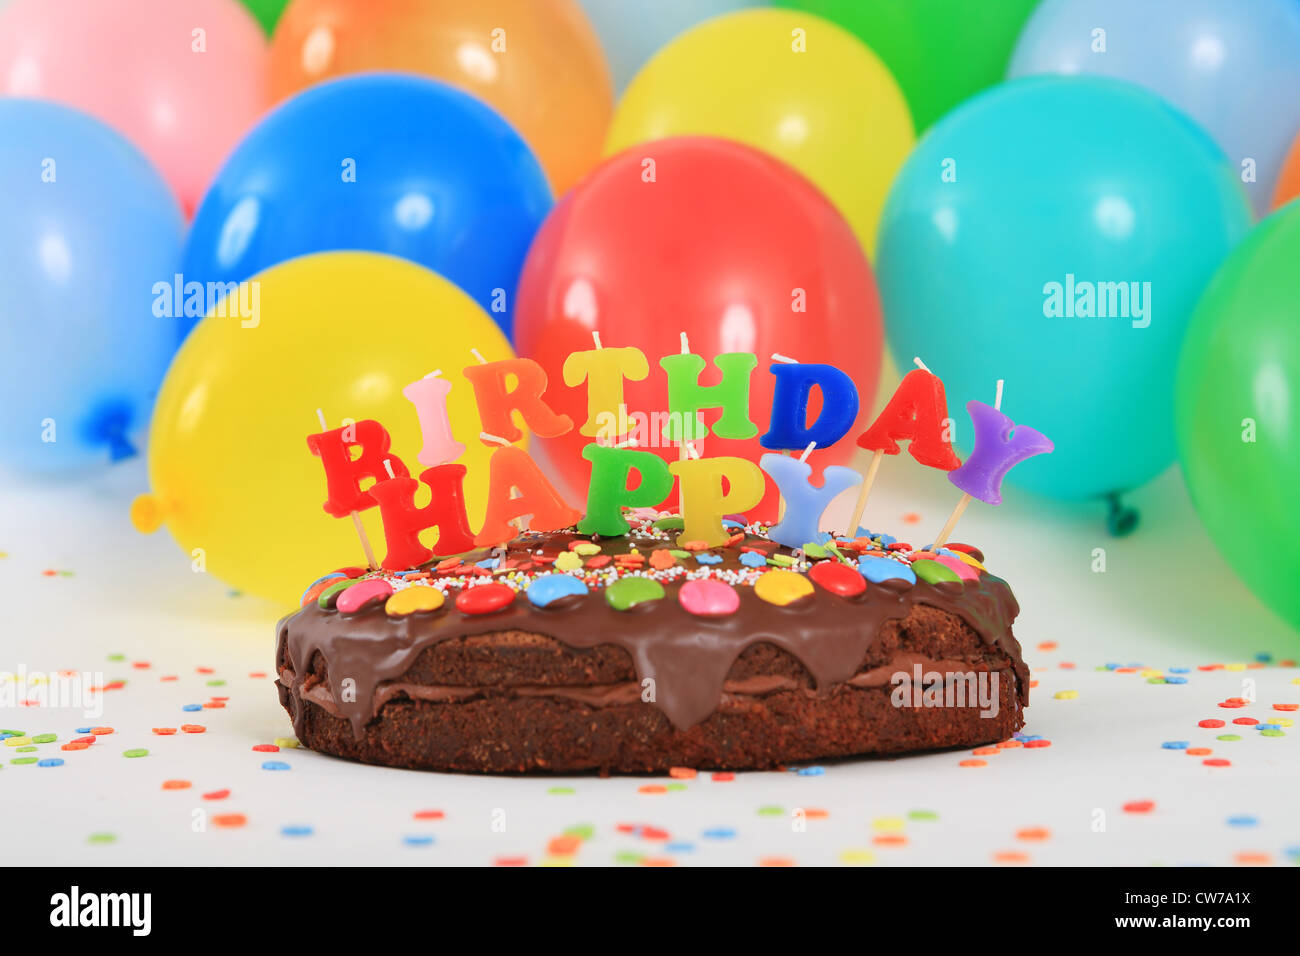 Happy Birthday Chocolate Cake With Candles And Balloons